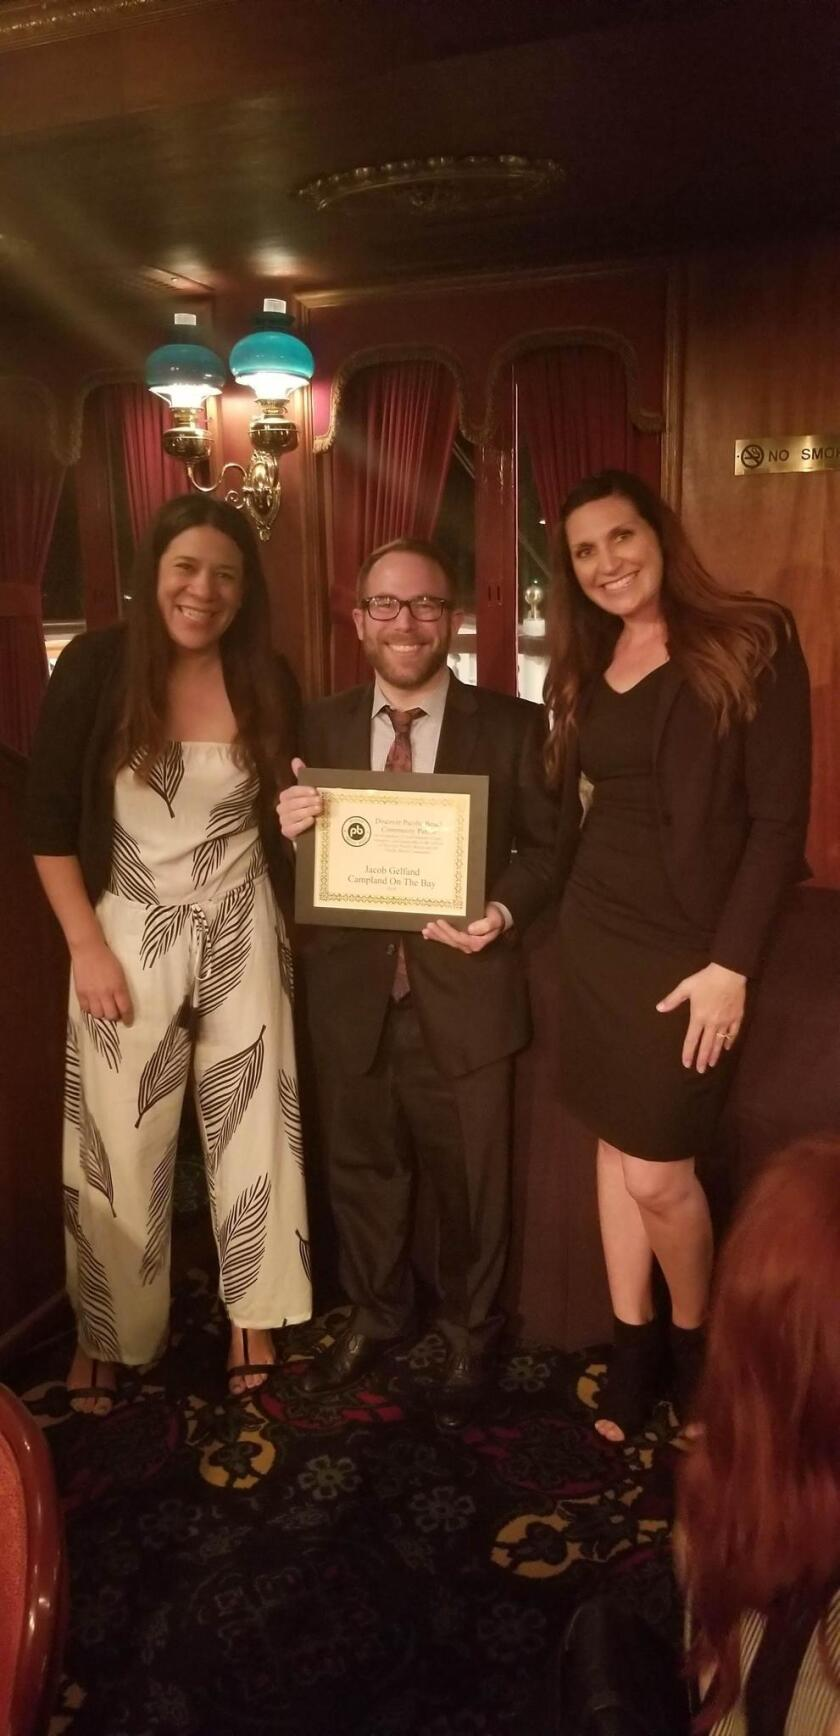 The Community Patron Award was given to Jacob Gelfand, vice president of operations at Campland on the Bay.